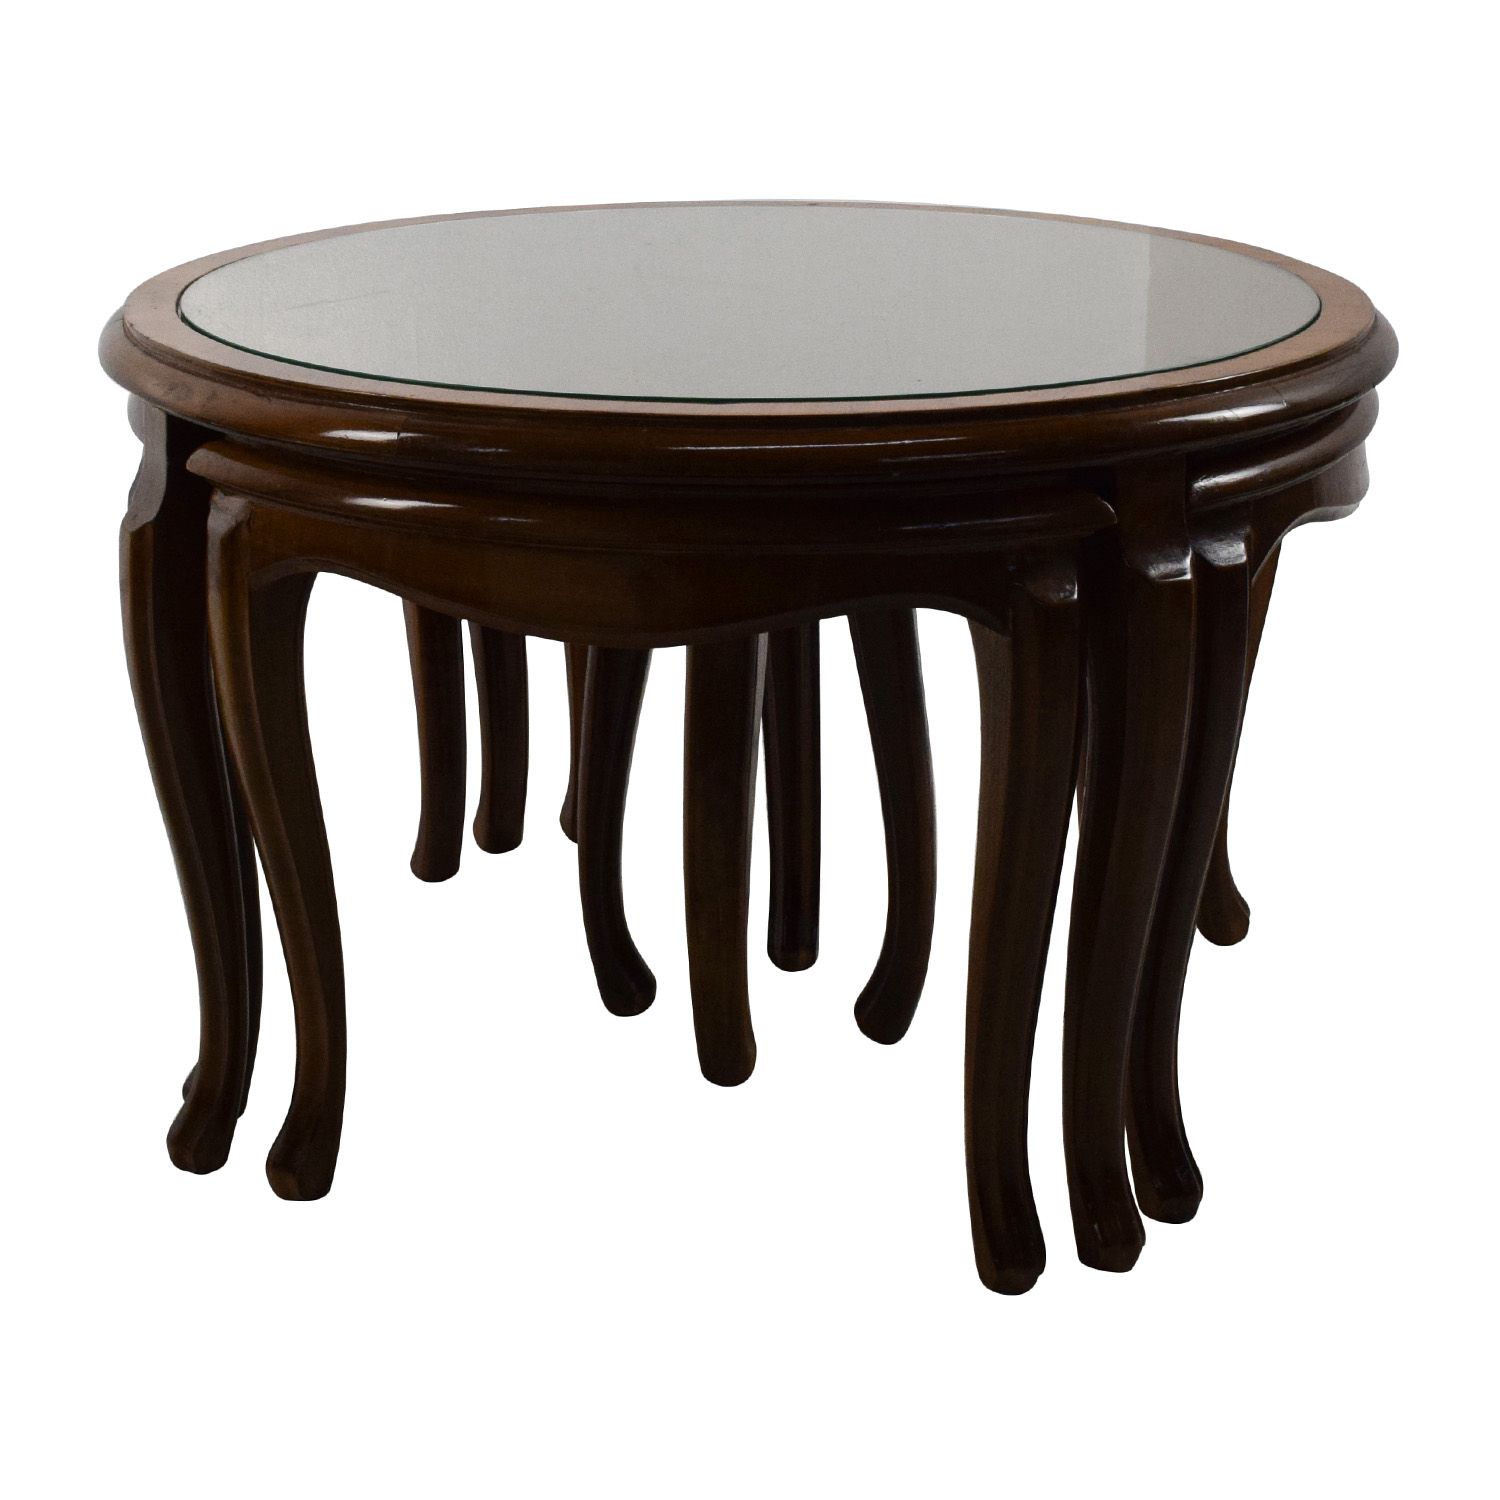 Glass Top Coffee Tables: Round Glass Top Coffee Table With 4 Nesting